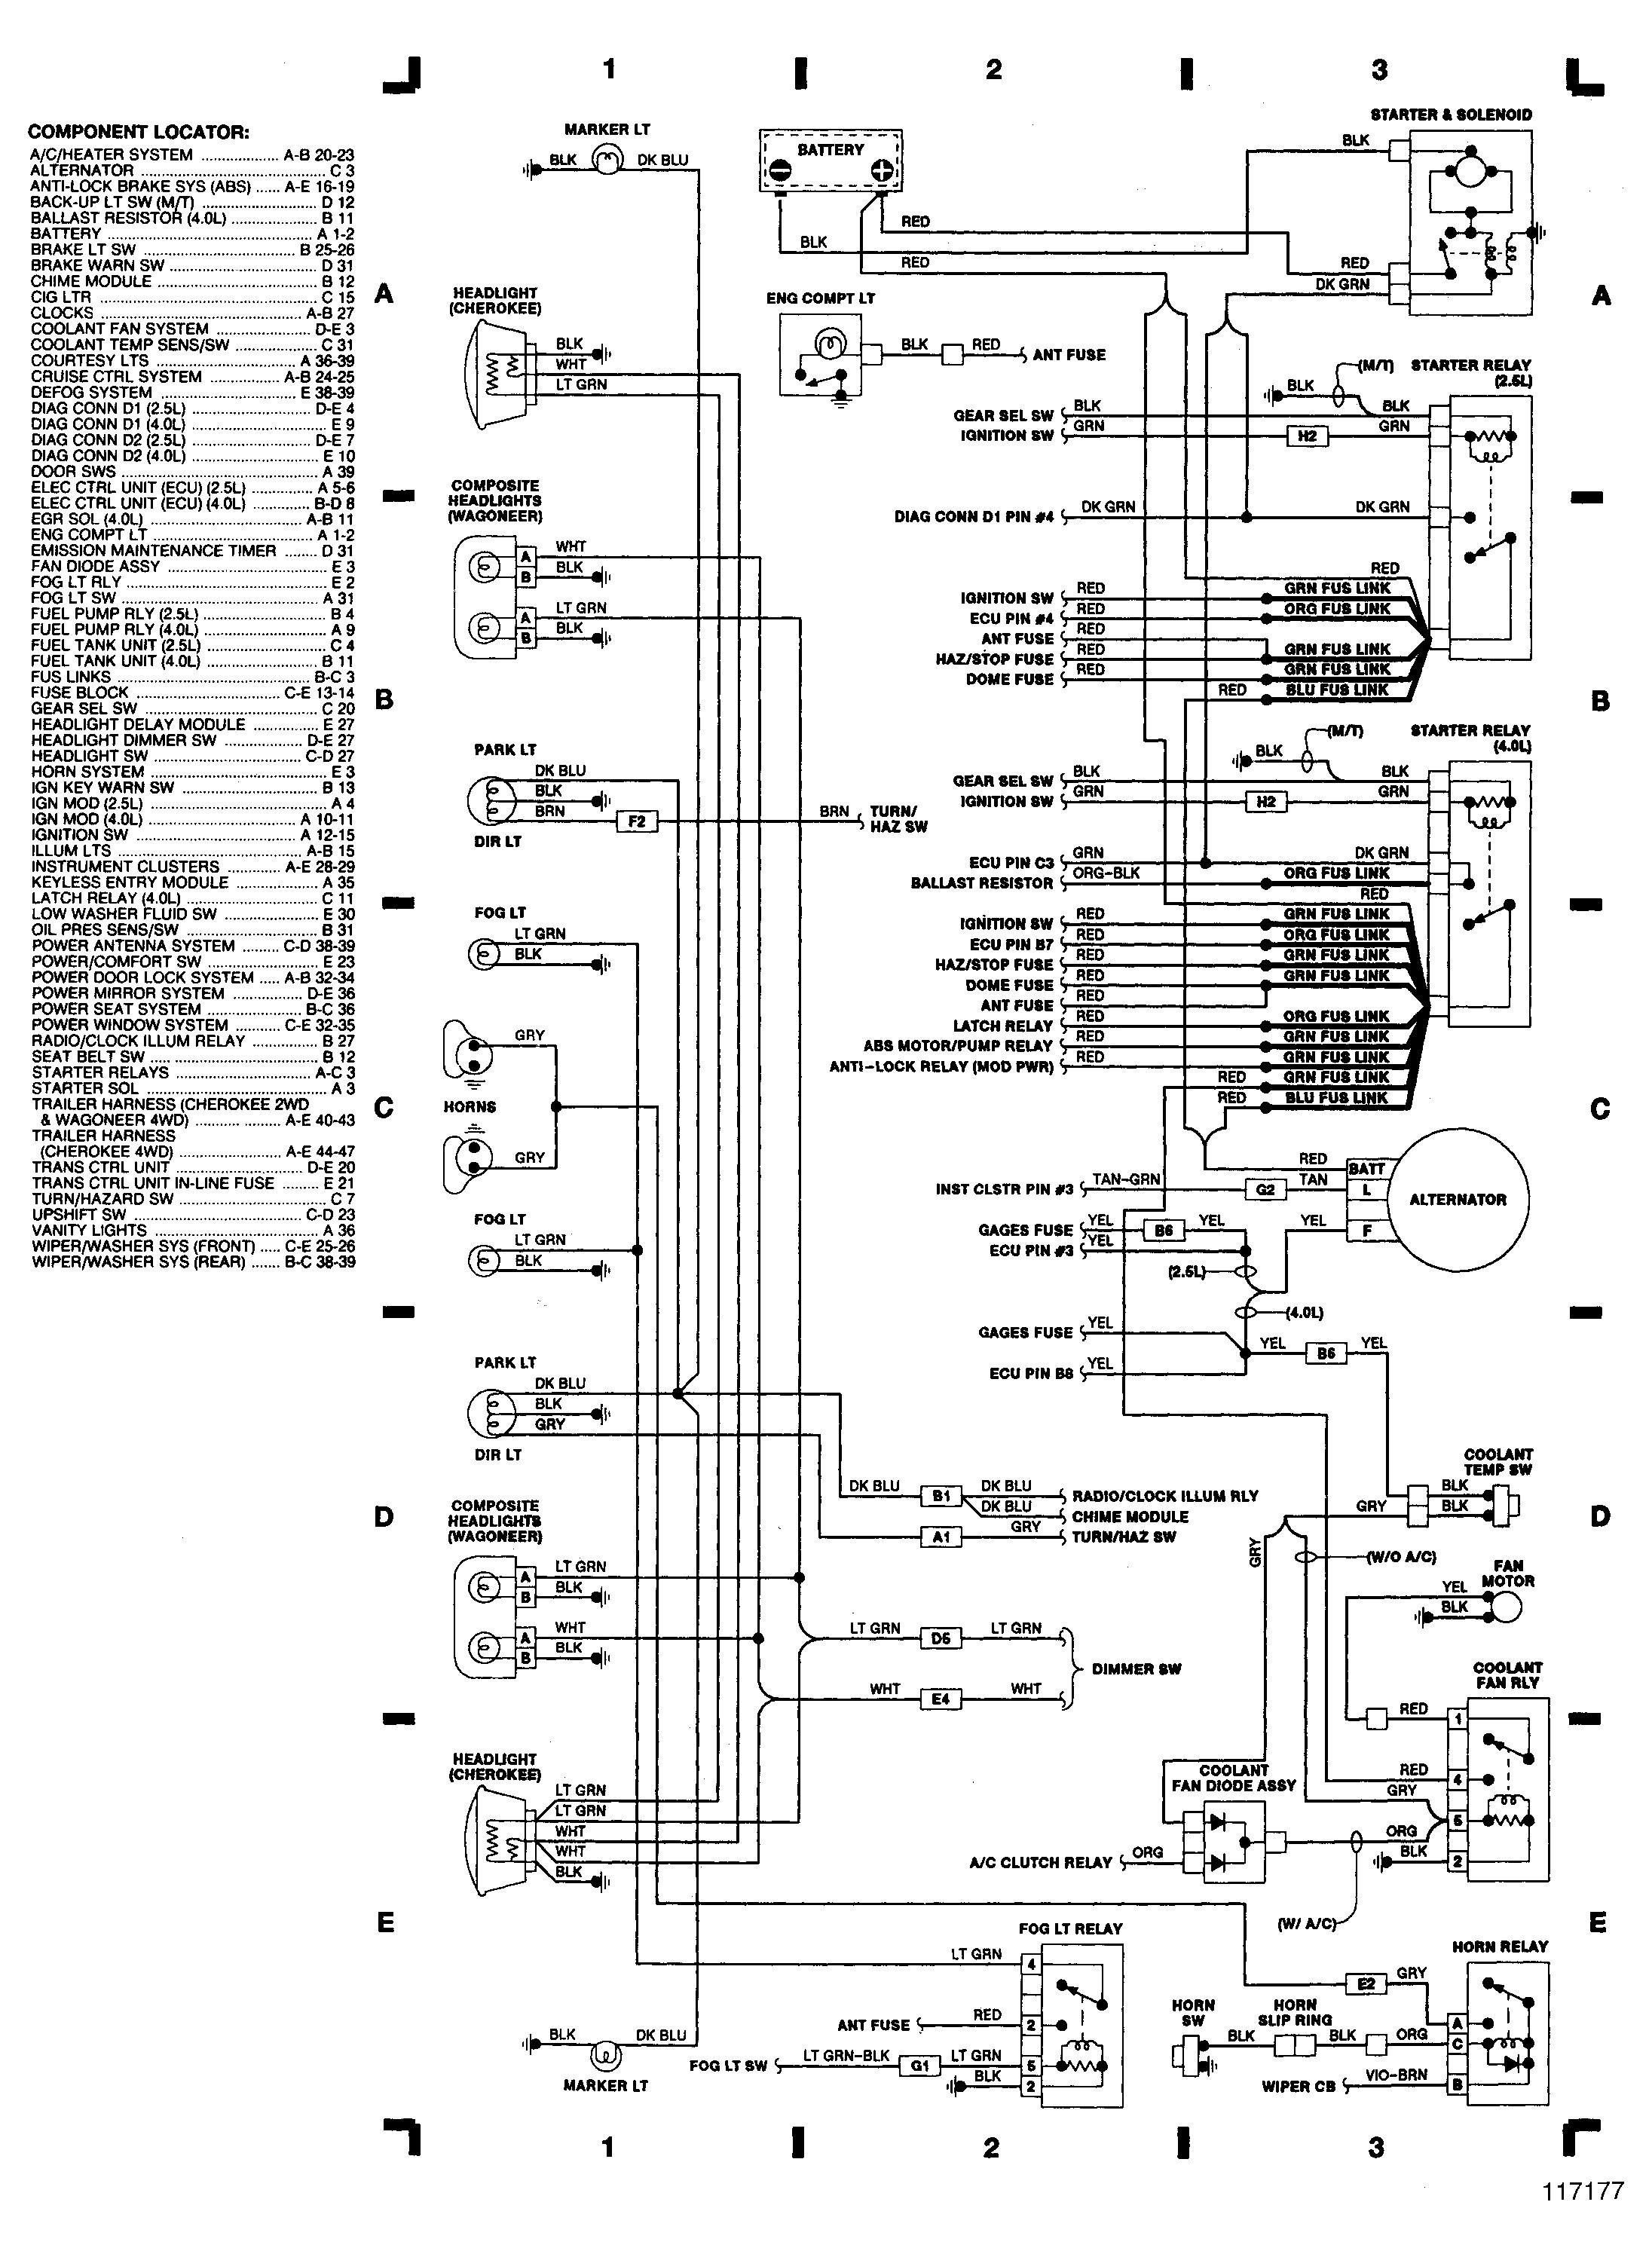 Rv wiring 2000 jeep grand cherokee wiring diagram 2000 jeep grand cherokee wiring diagram unique wiring diagram image jeep grand cherokee laredo rv wiring 2000 jeep grand cherokee swarovskicordoba Image collections